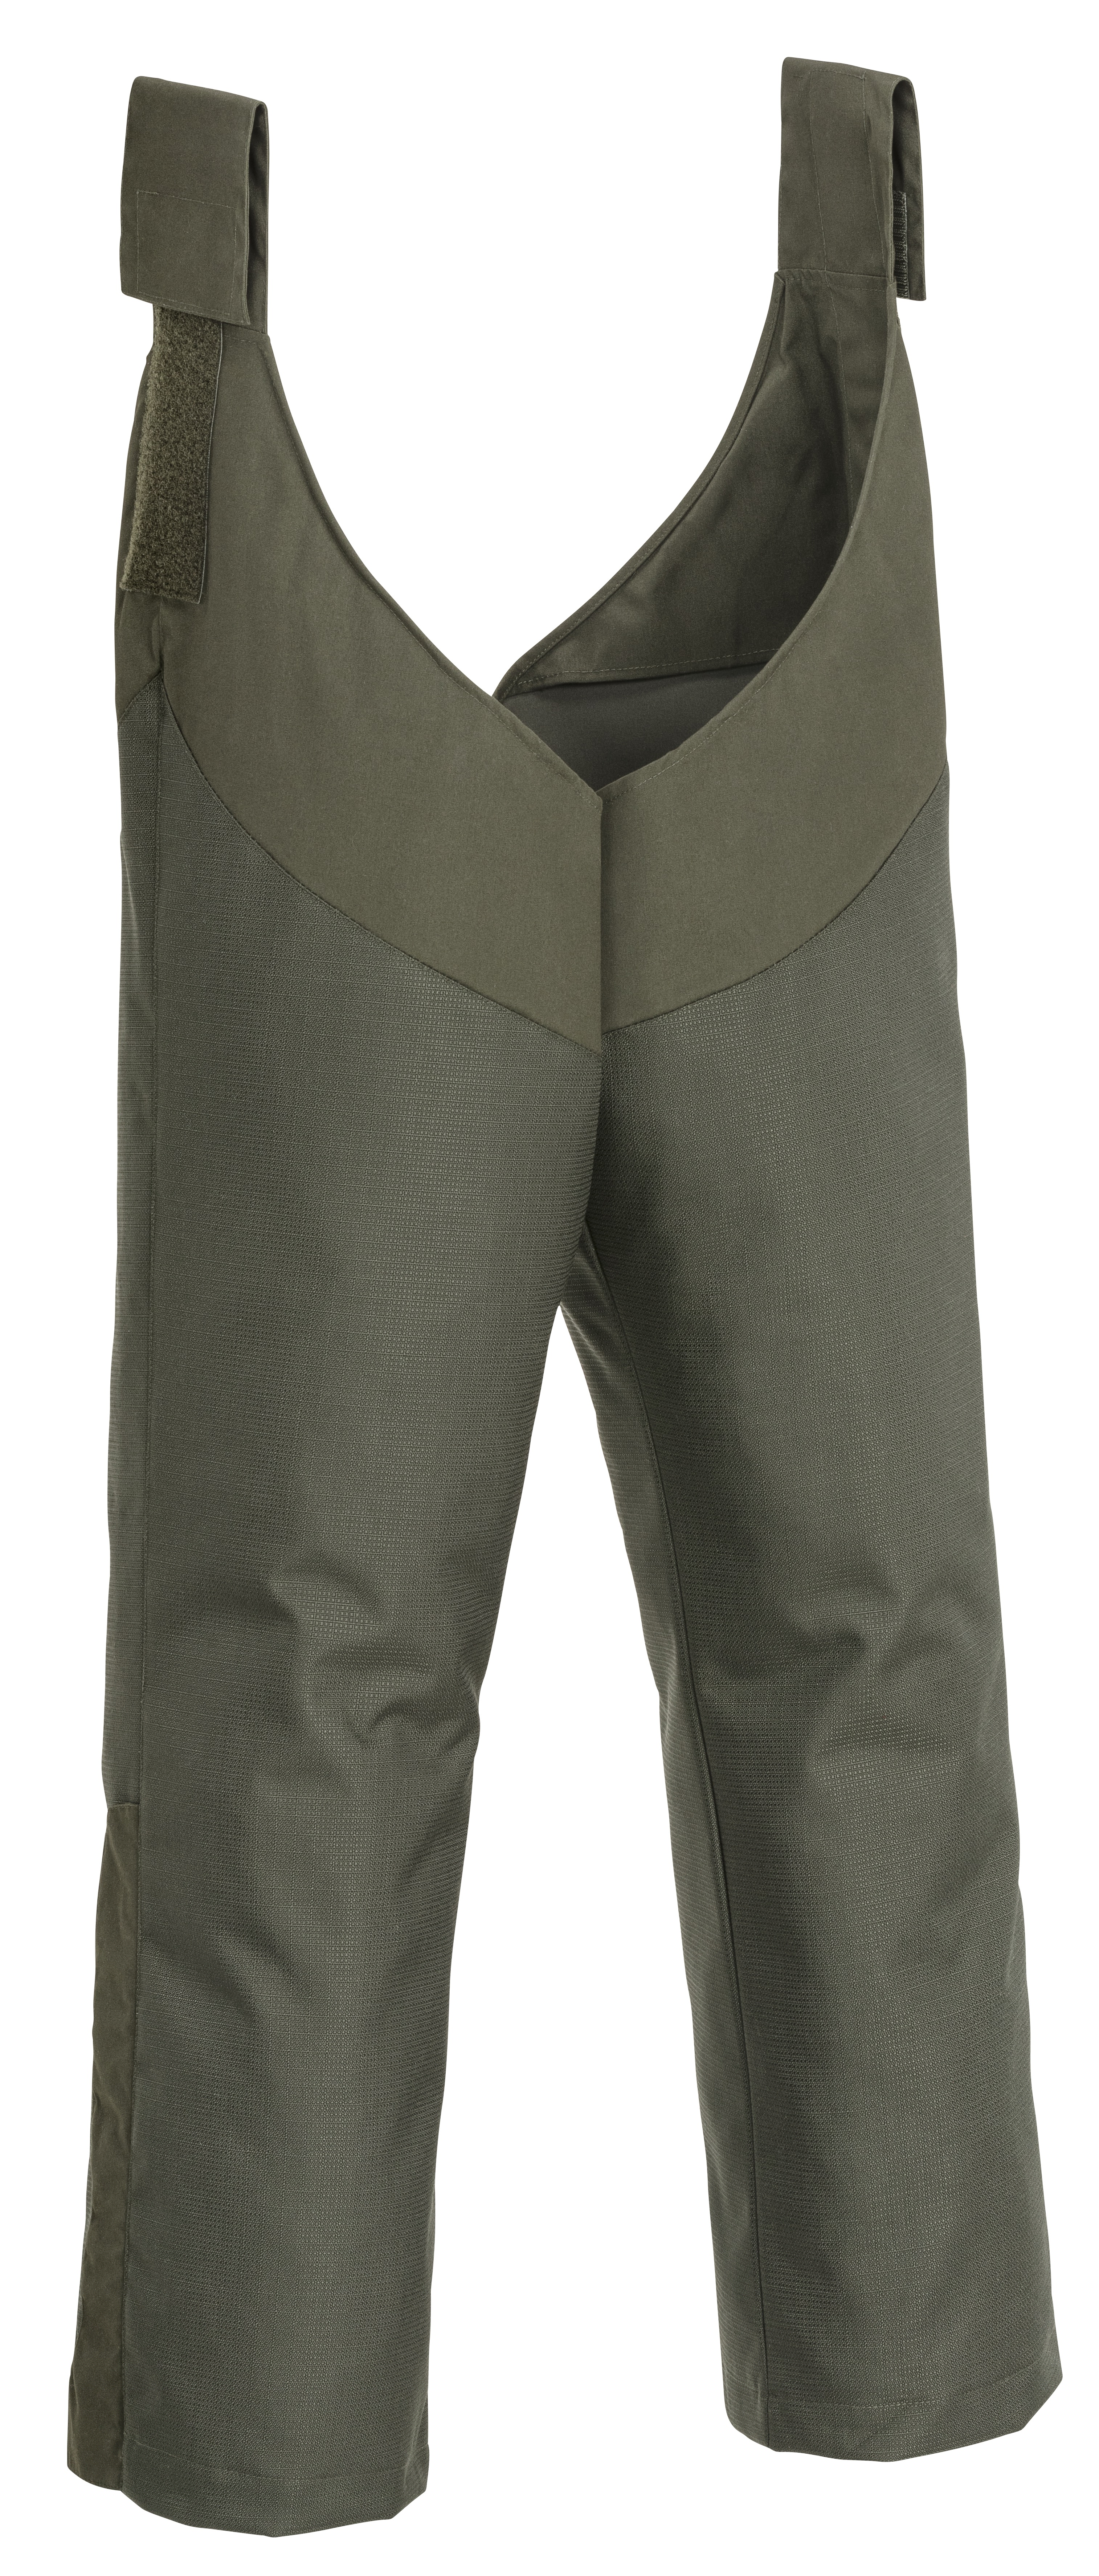 Pinewood Beinlinge Thorn Chaps - Pinewood